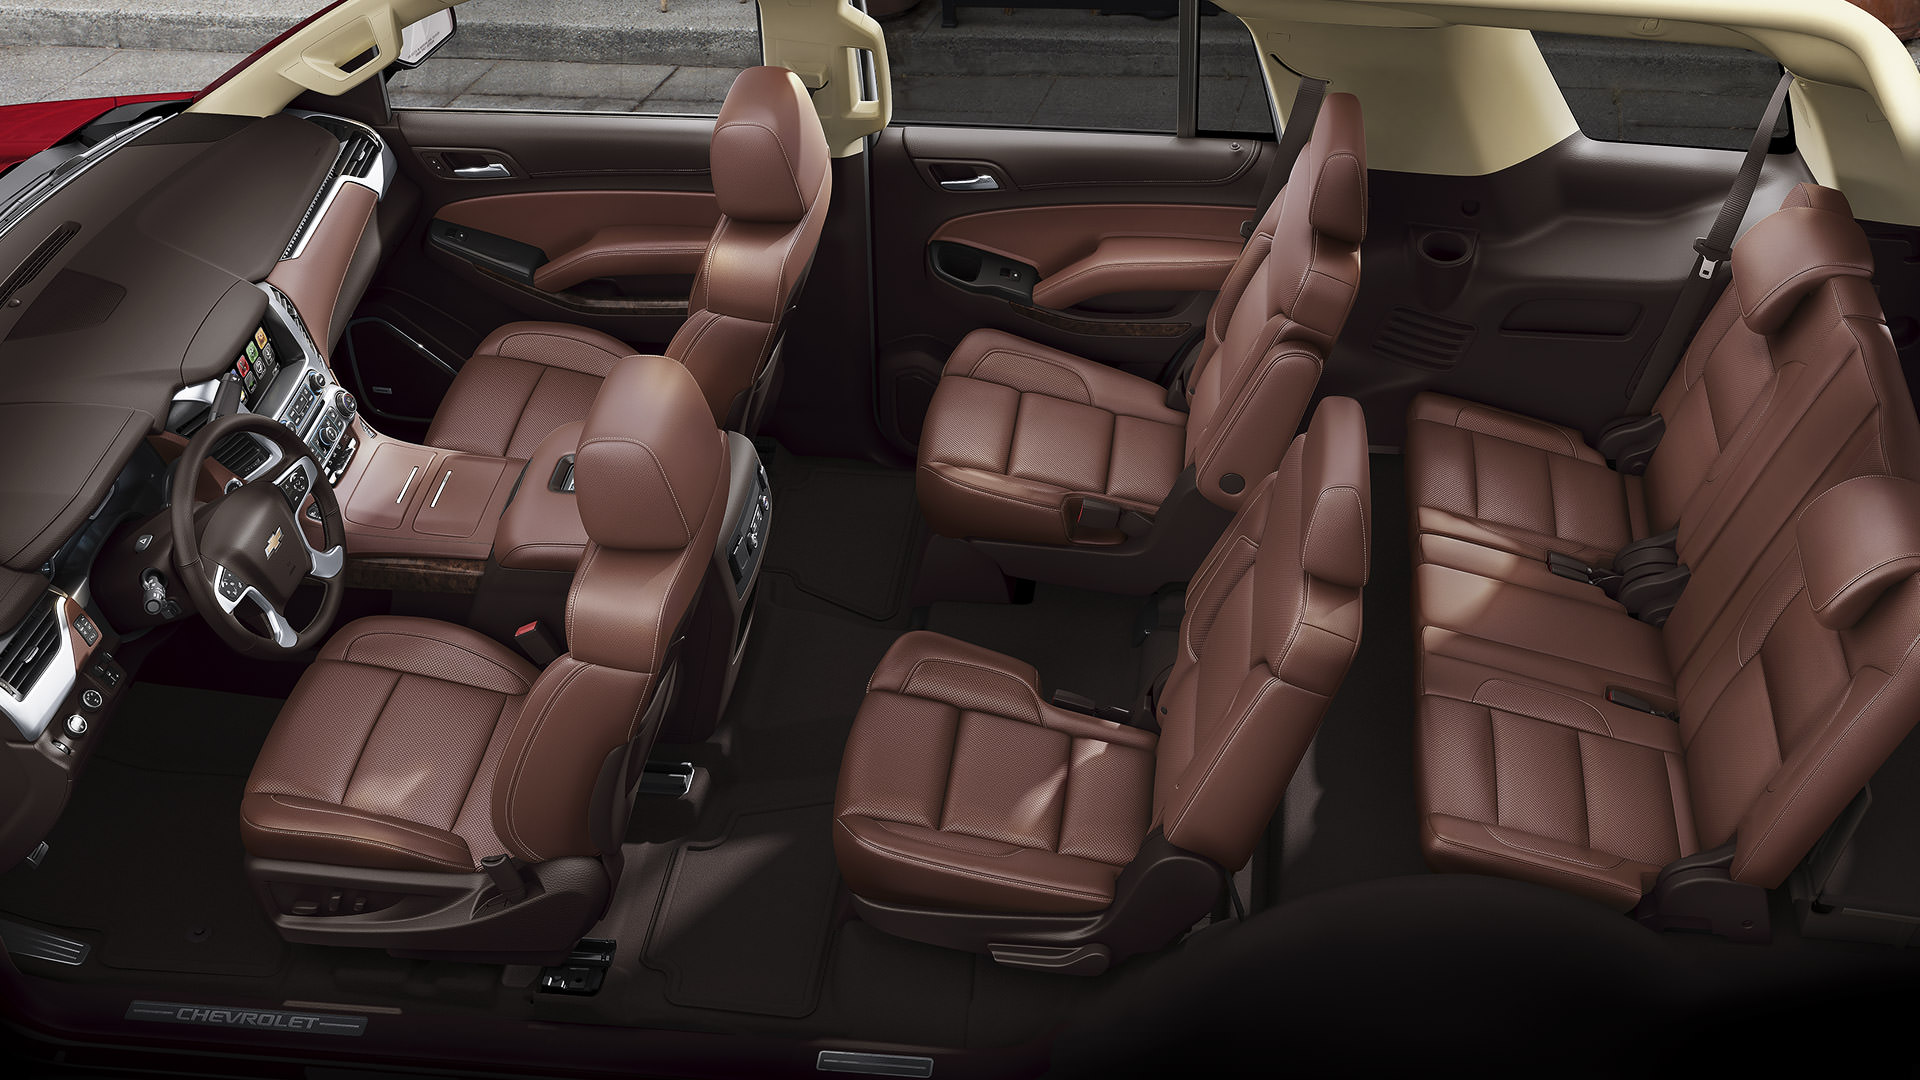 2017 Chevrolet Tahoe Brown Seating Interior